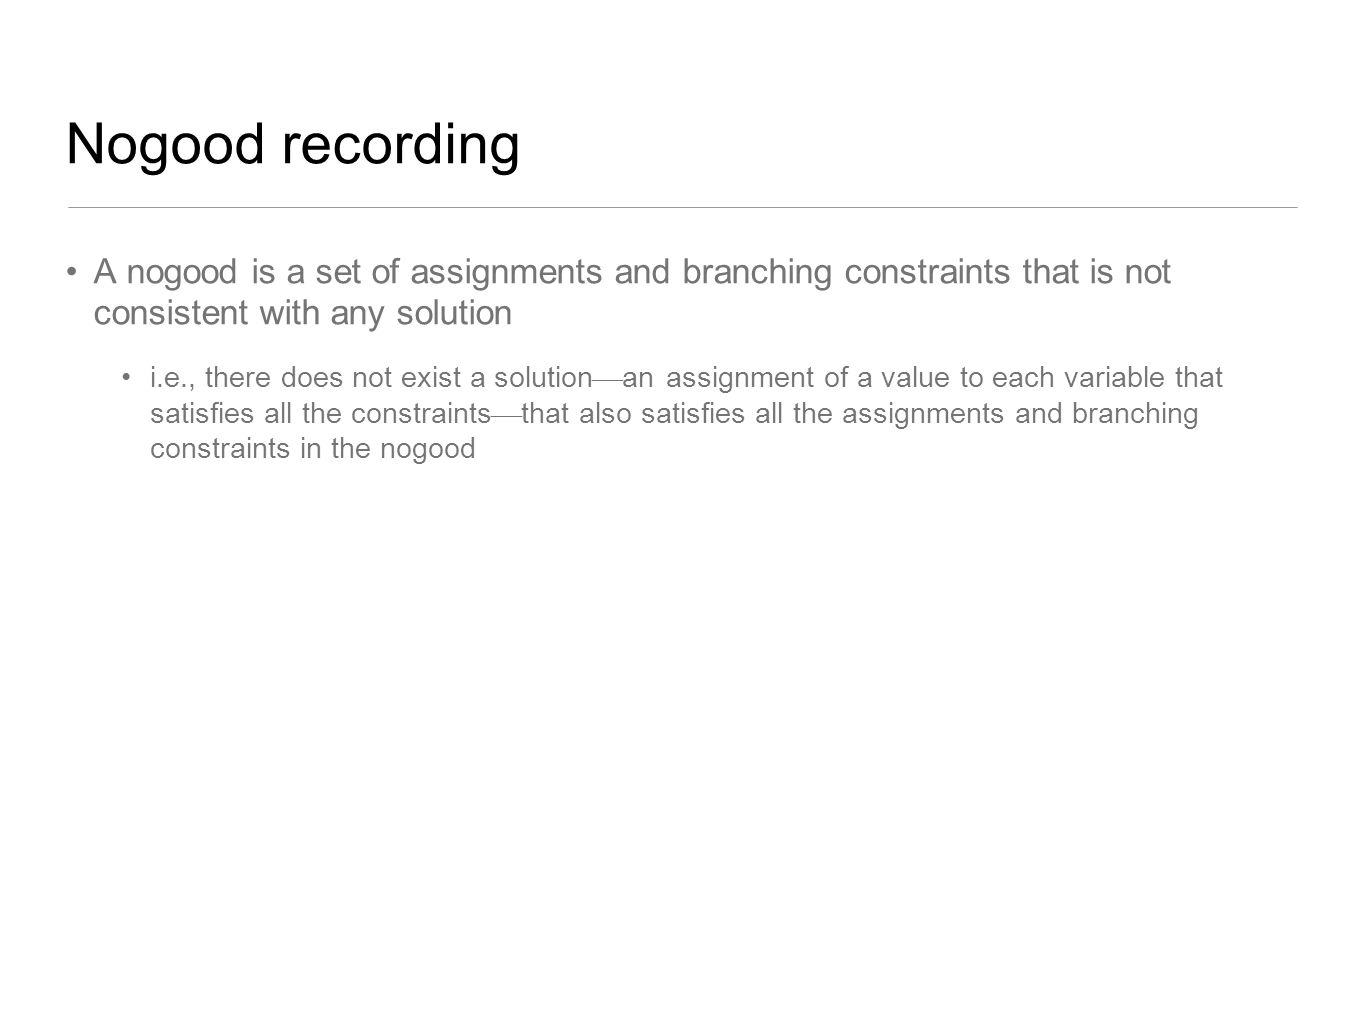 Nogood recording A nogood is a set of assignments and branching constraints that is not consistent with any solution i.e., there does not exist a solu